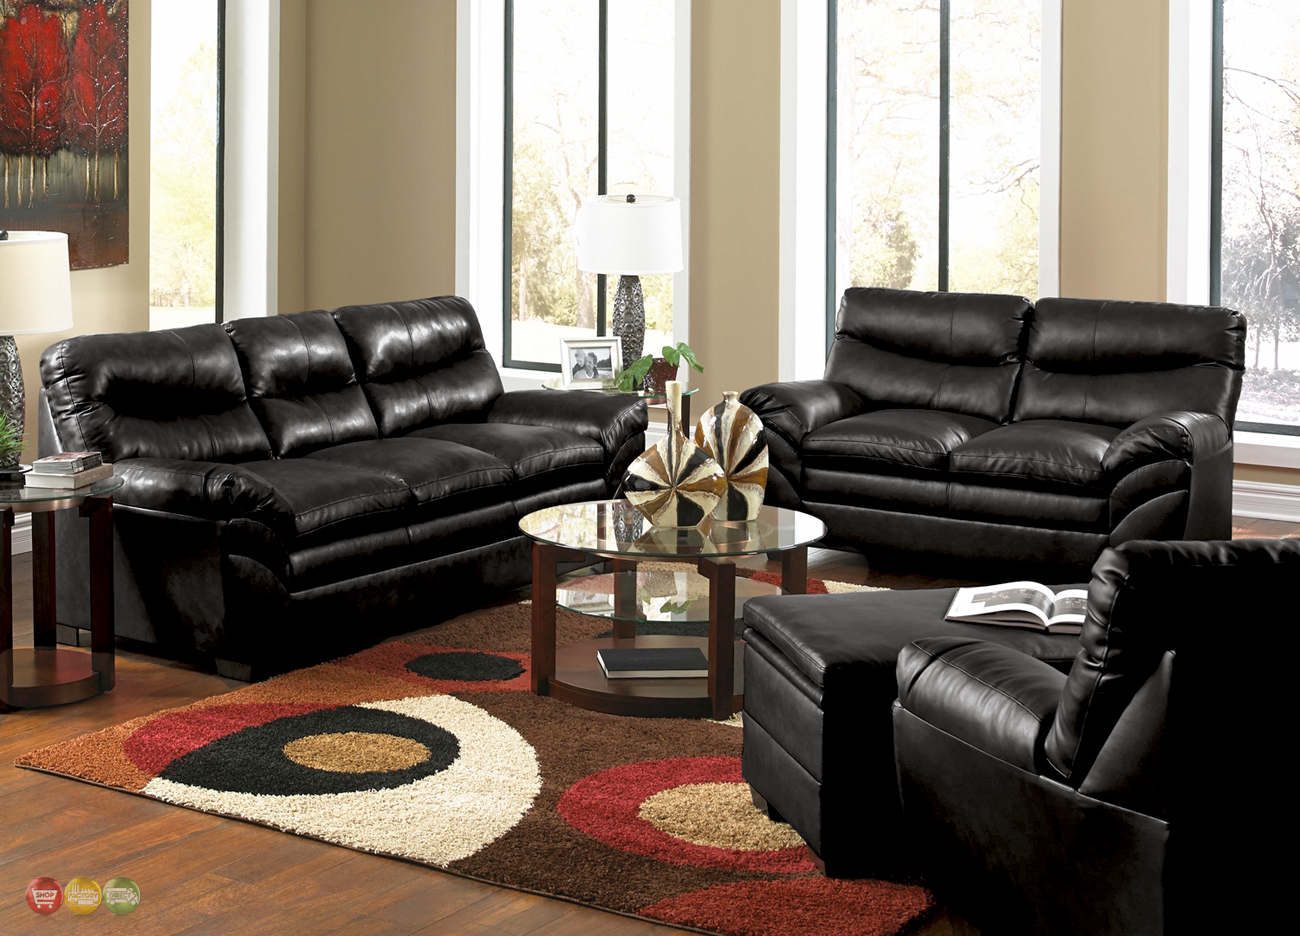 Casual contemporary black bonded leather sofa set living room furniture for Living room with black leather furniture